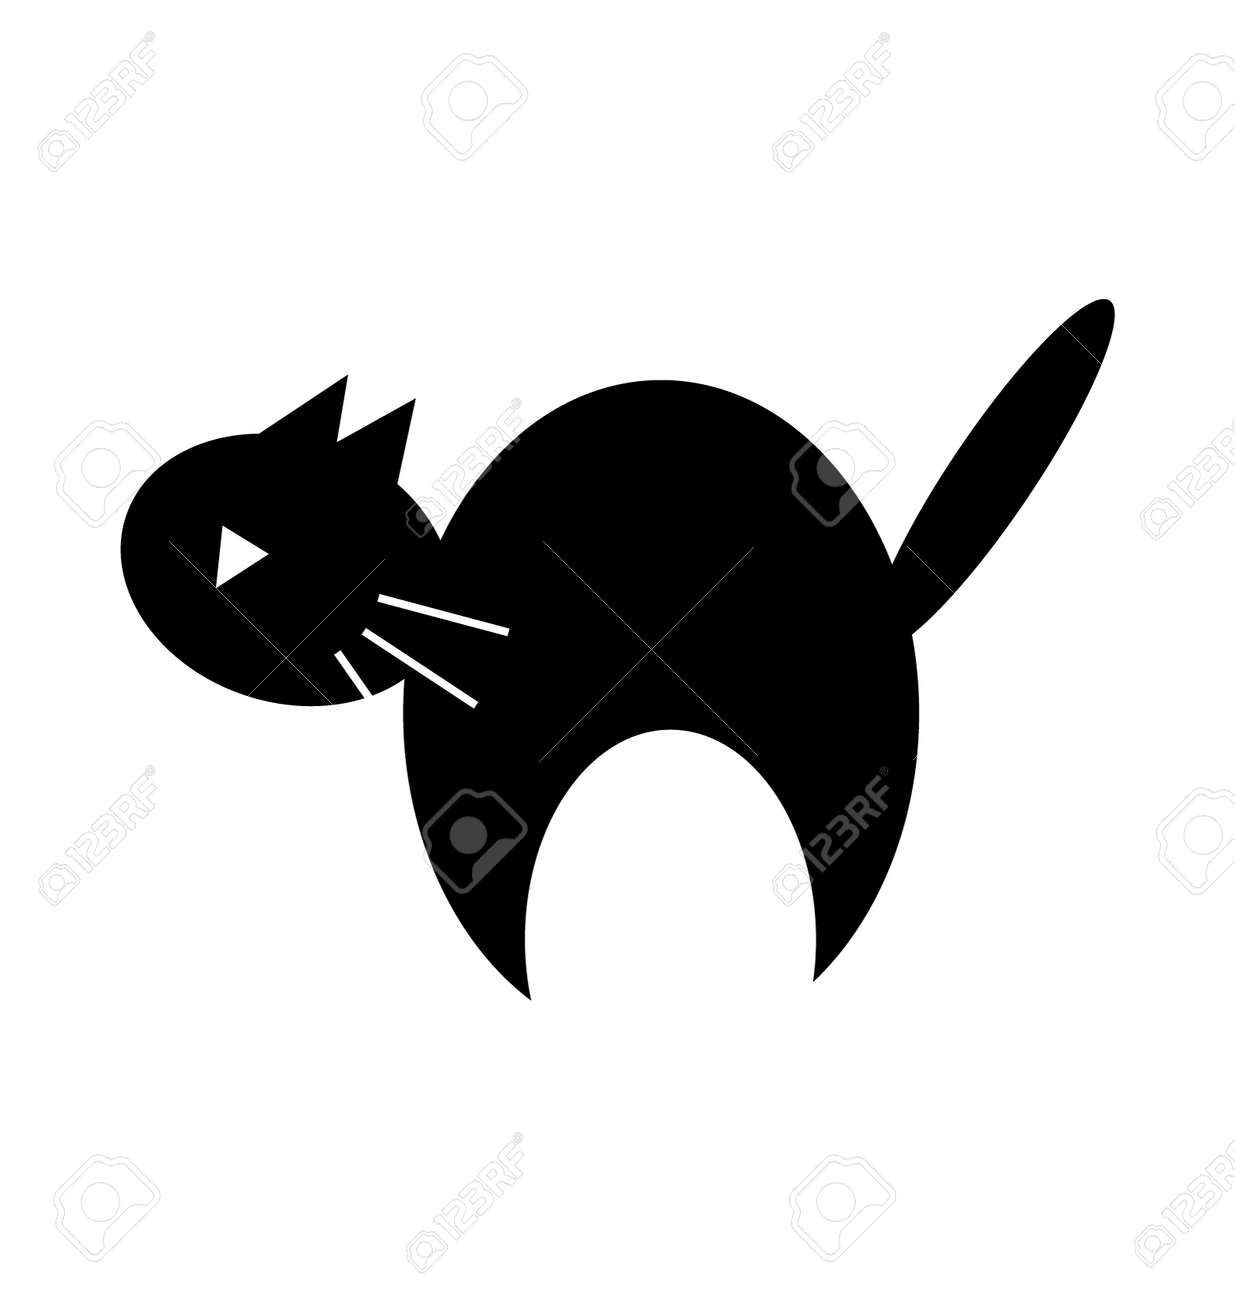 cute halloween black cat silhouette clipart stock vector 32055113 - Black Cat Silhouette Halloween